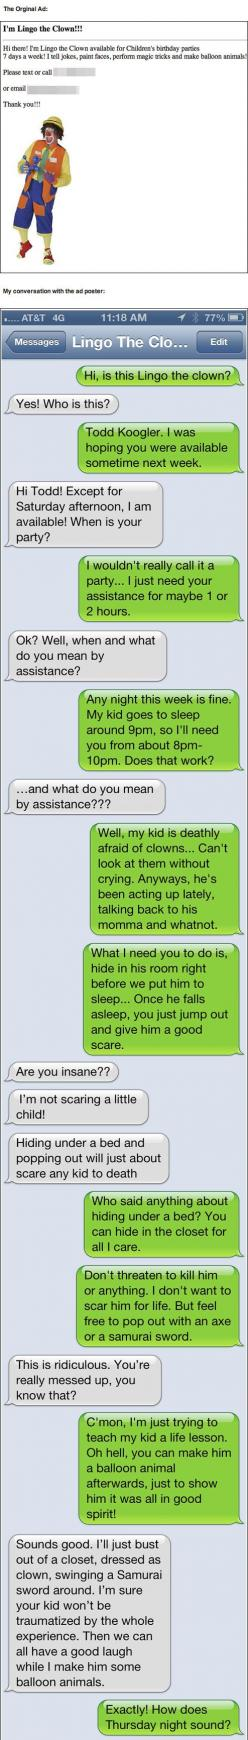 I just died: Funny Texts, Giggle, Hate Clowns, Funny Stuff, Funnies, So Funny